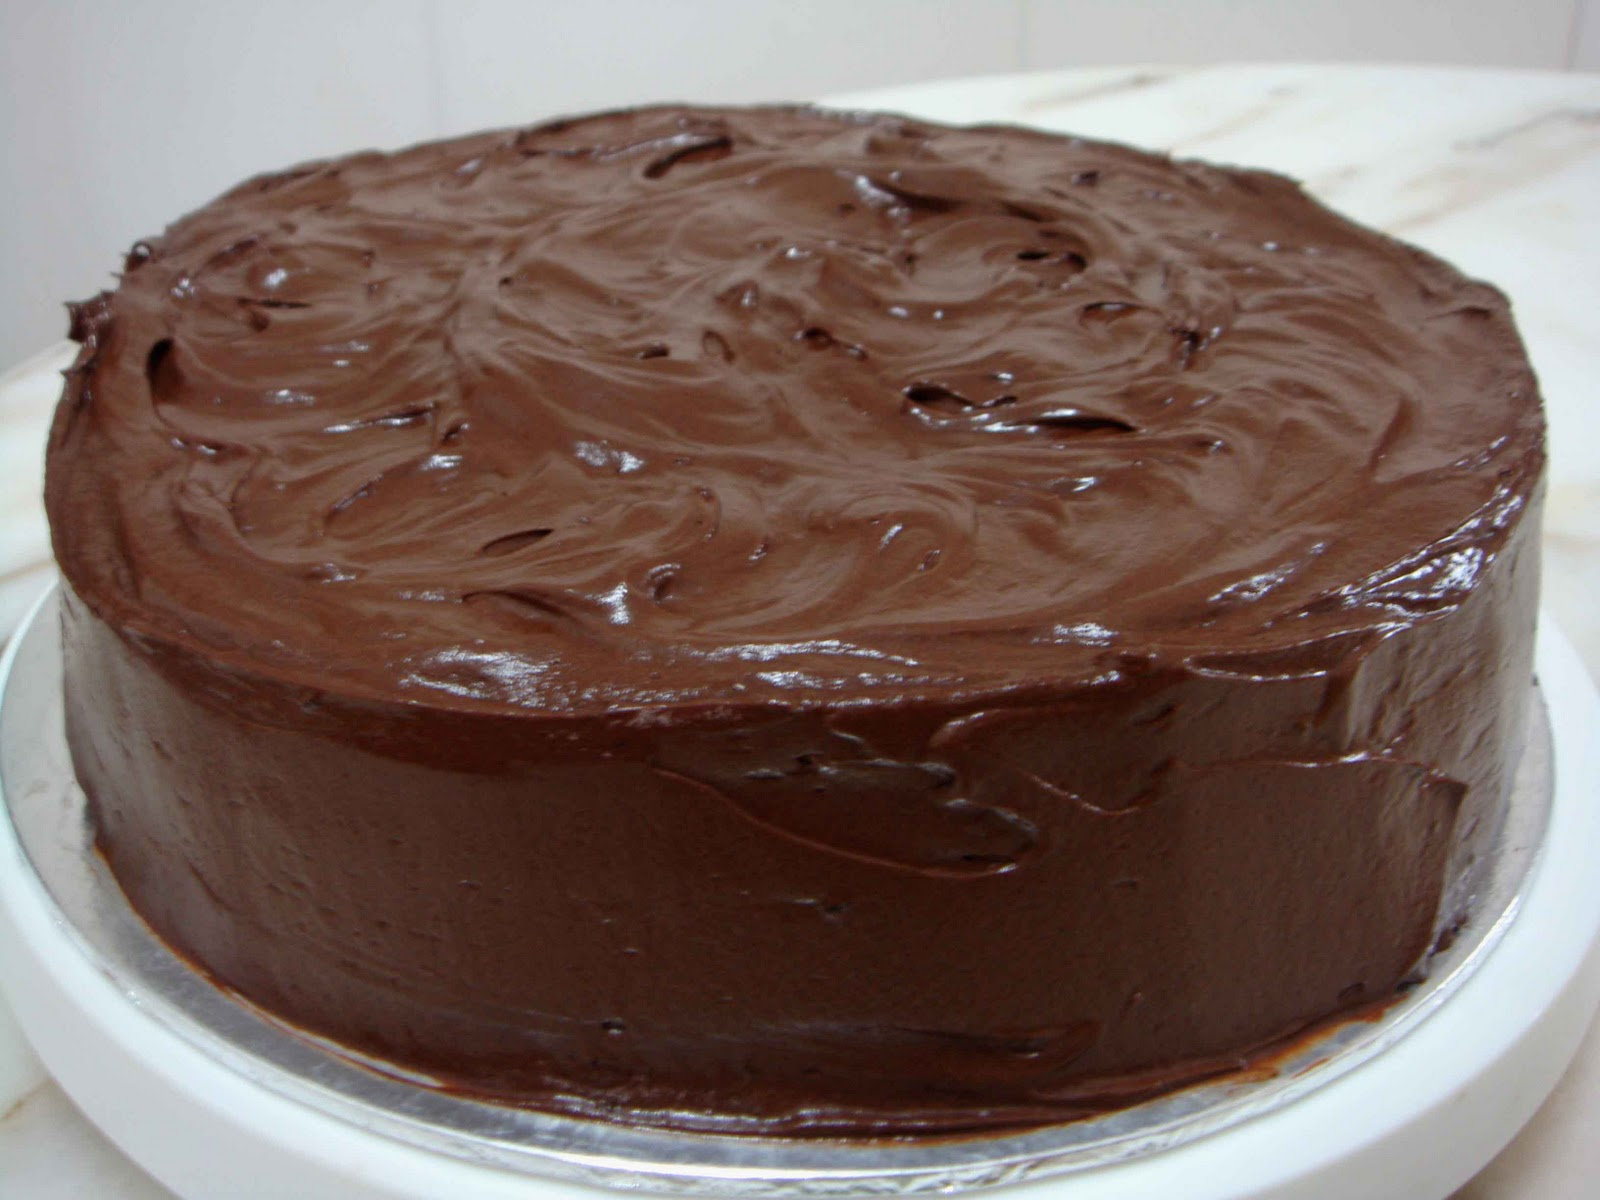 Chocolate Cake With Melted Chocolate In The Middle